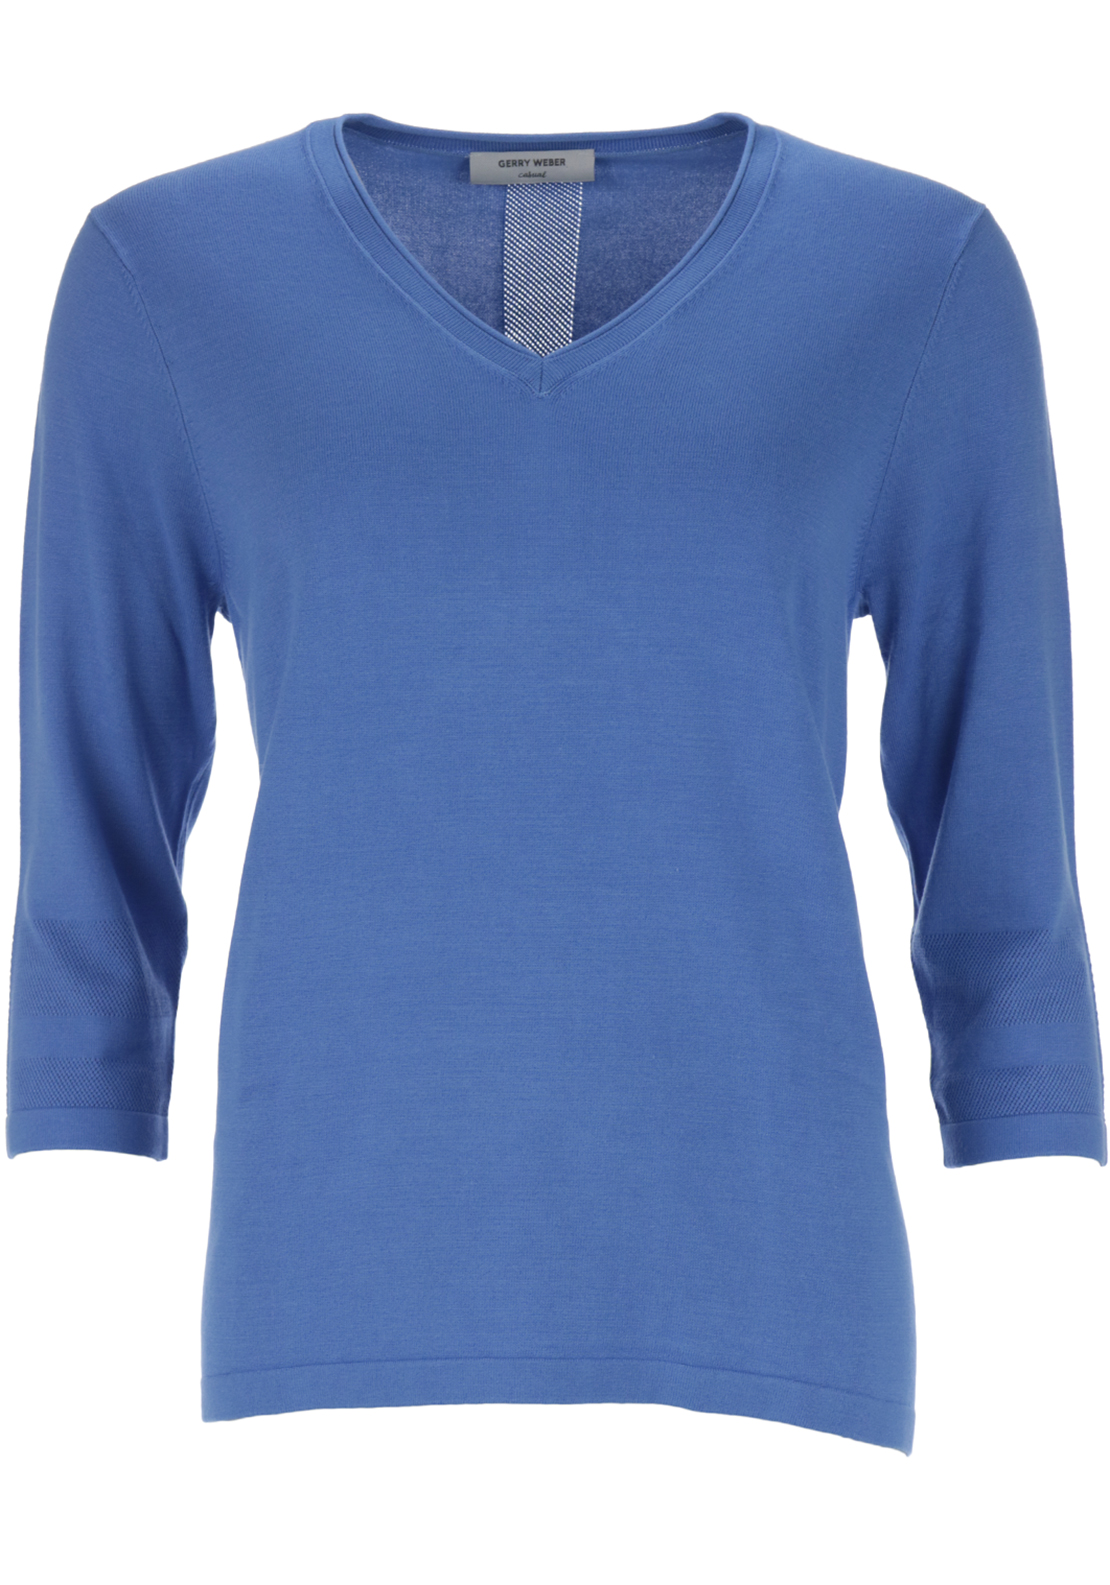 Gerry Weber V-necked Knitwear, Blue